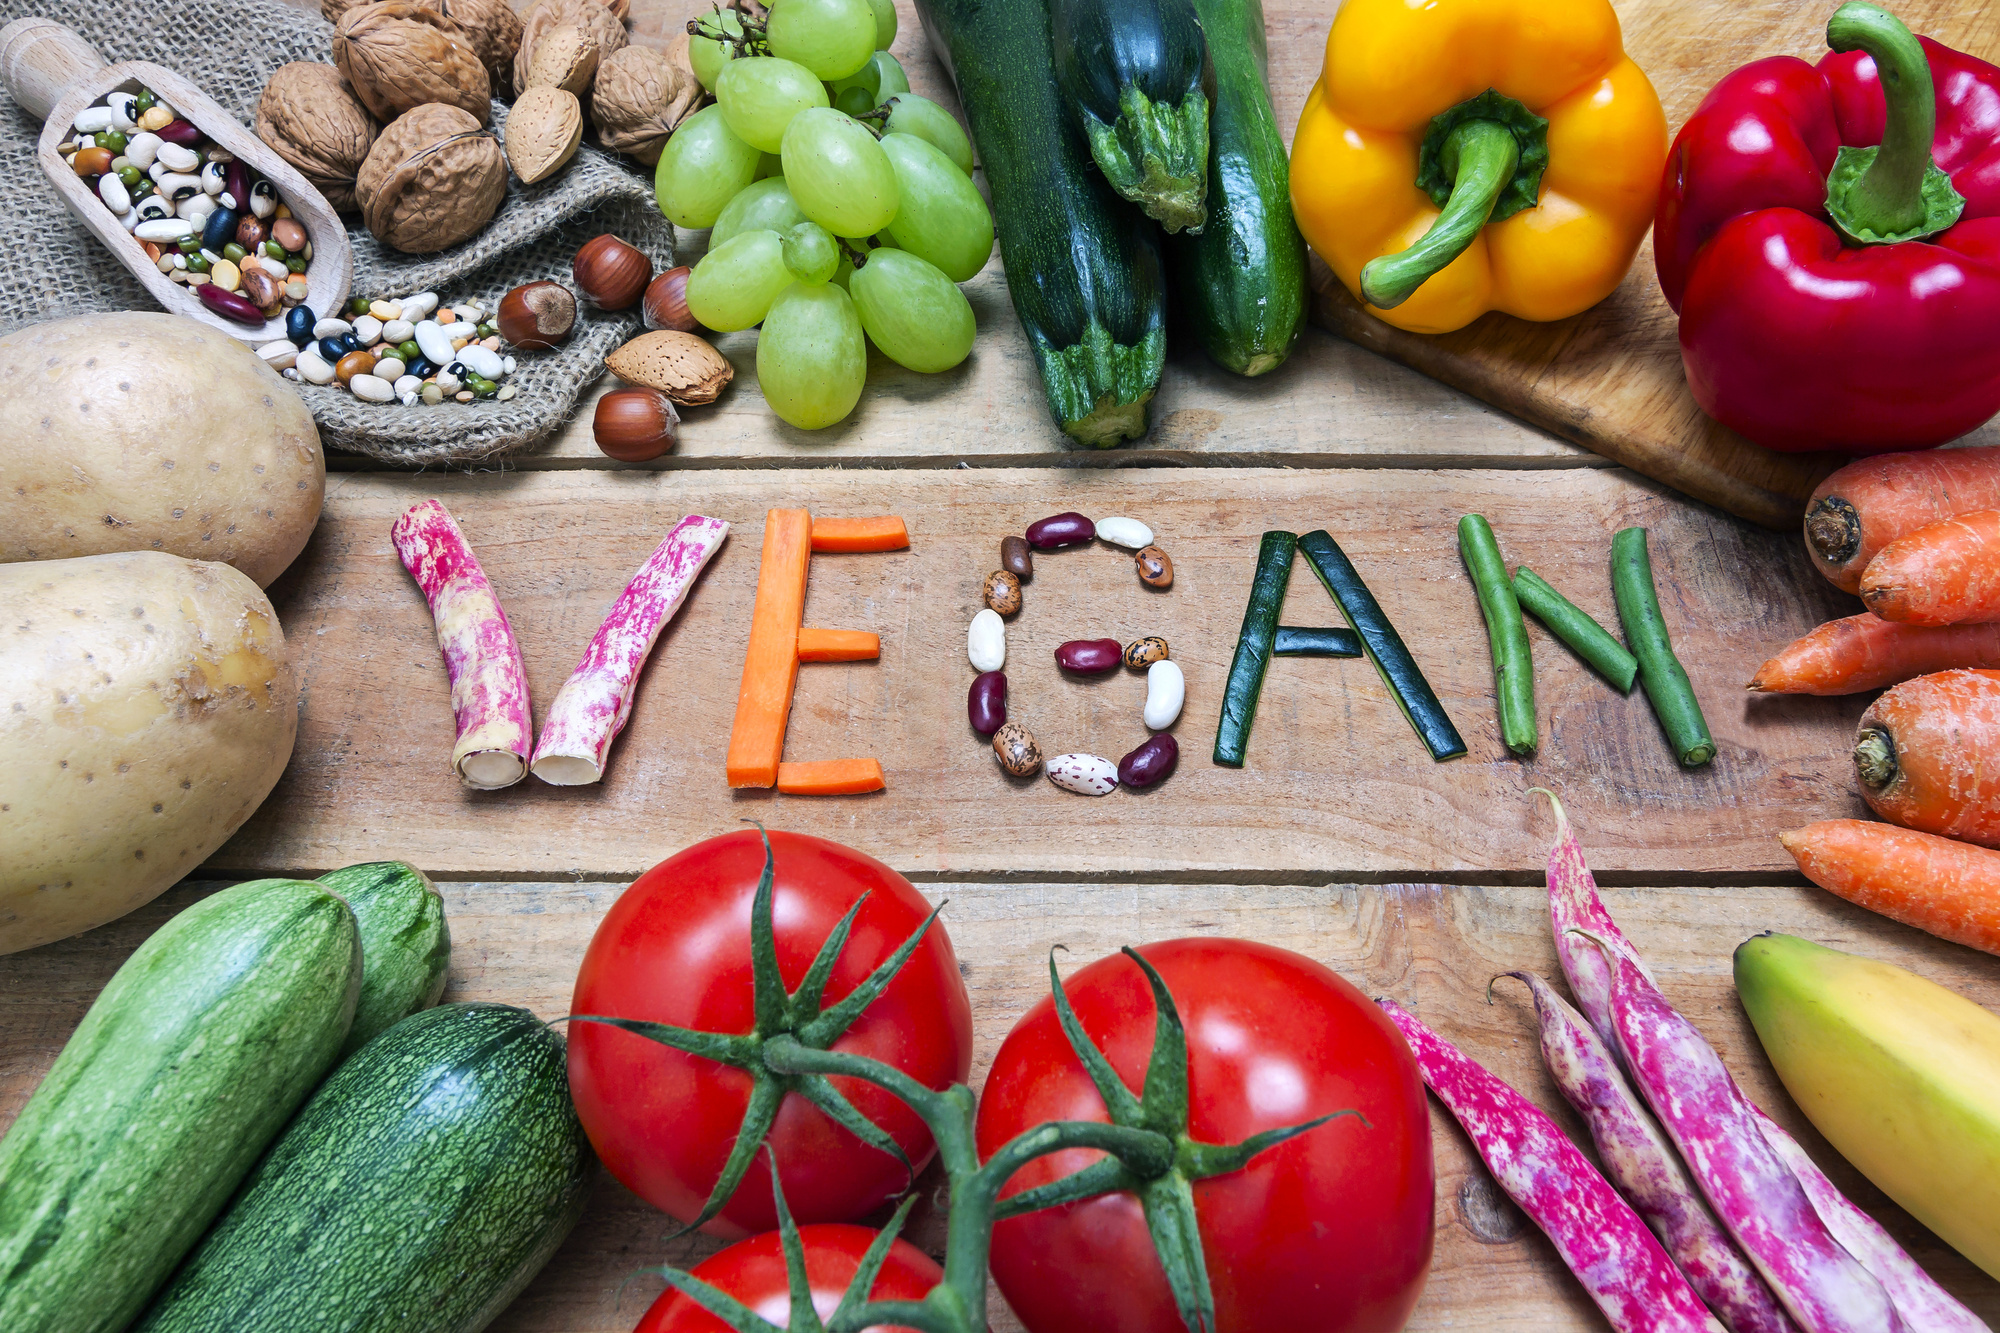 3 Tips for Going Vegan (And Sticking With It)